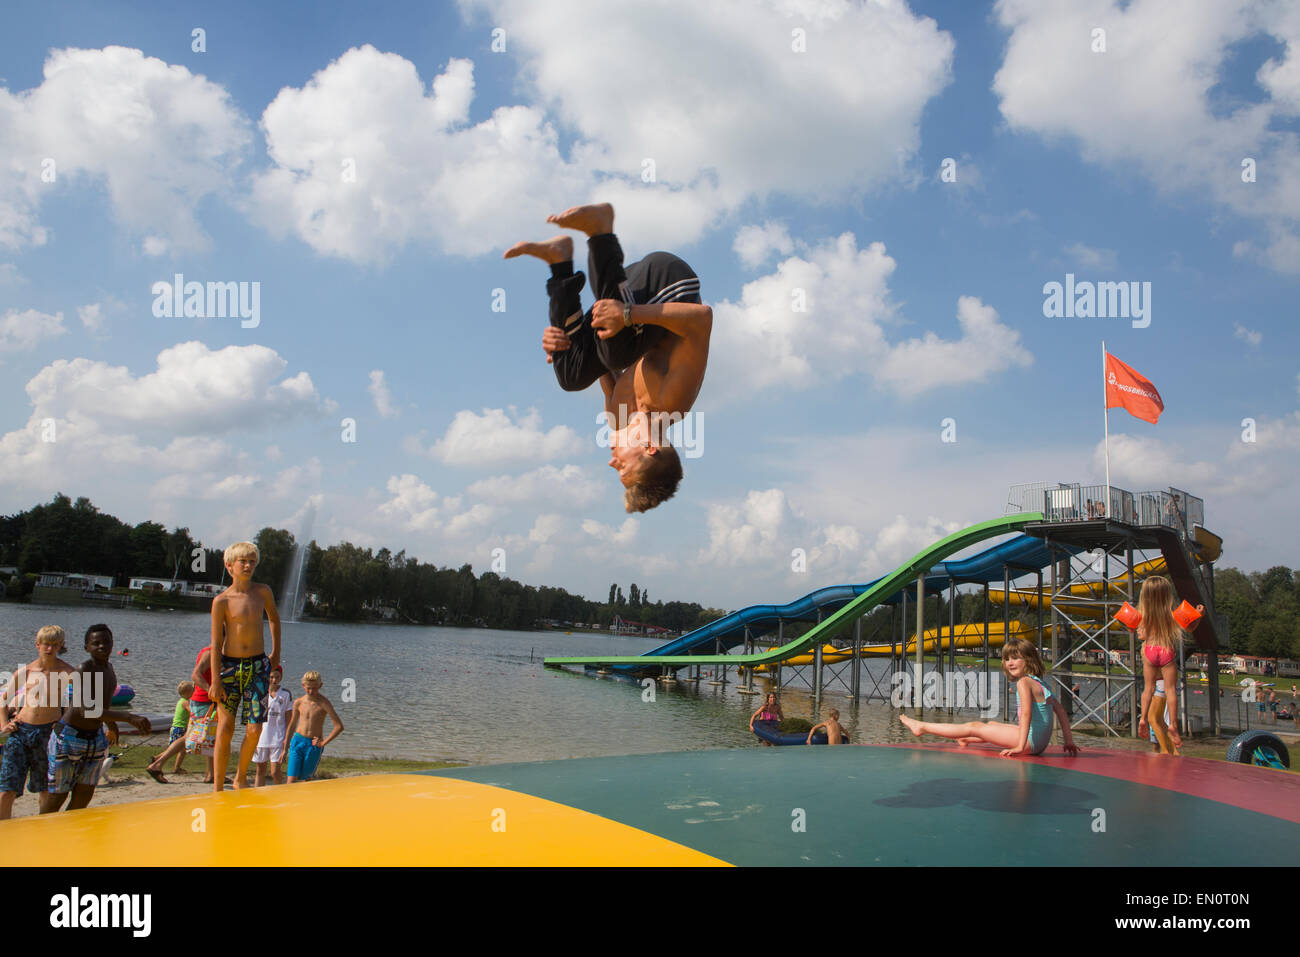 Pool acrobatics stock photos pool acrobatics stock - Campsites in holland with swimming pool ...